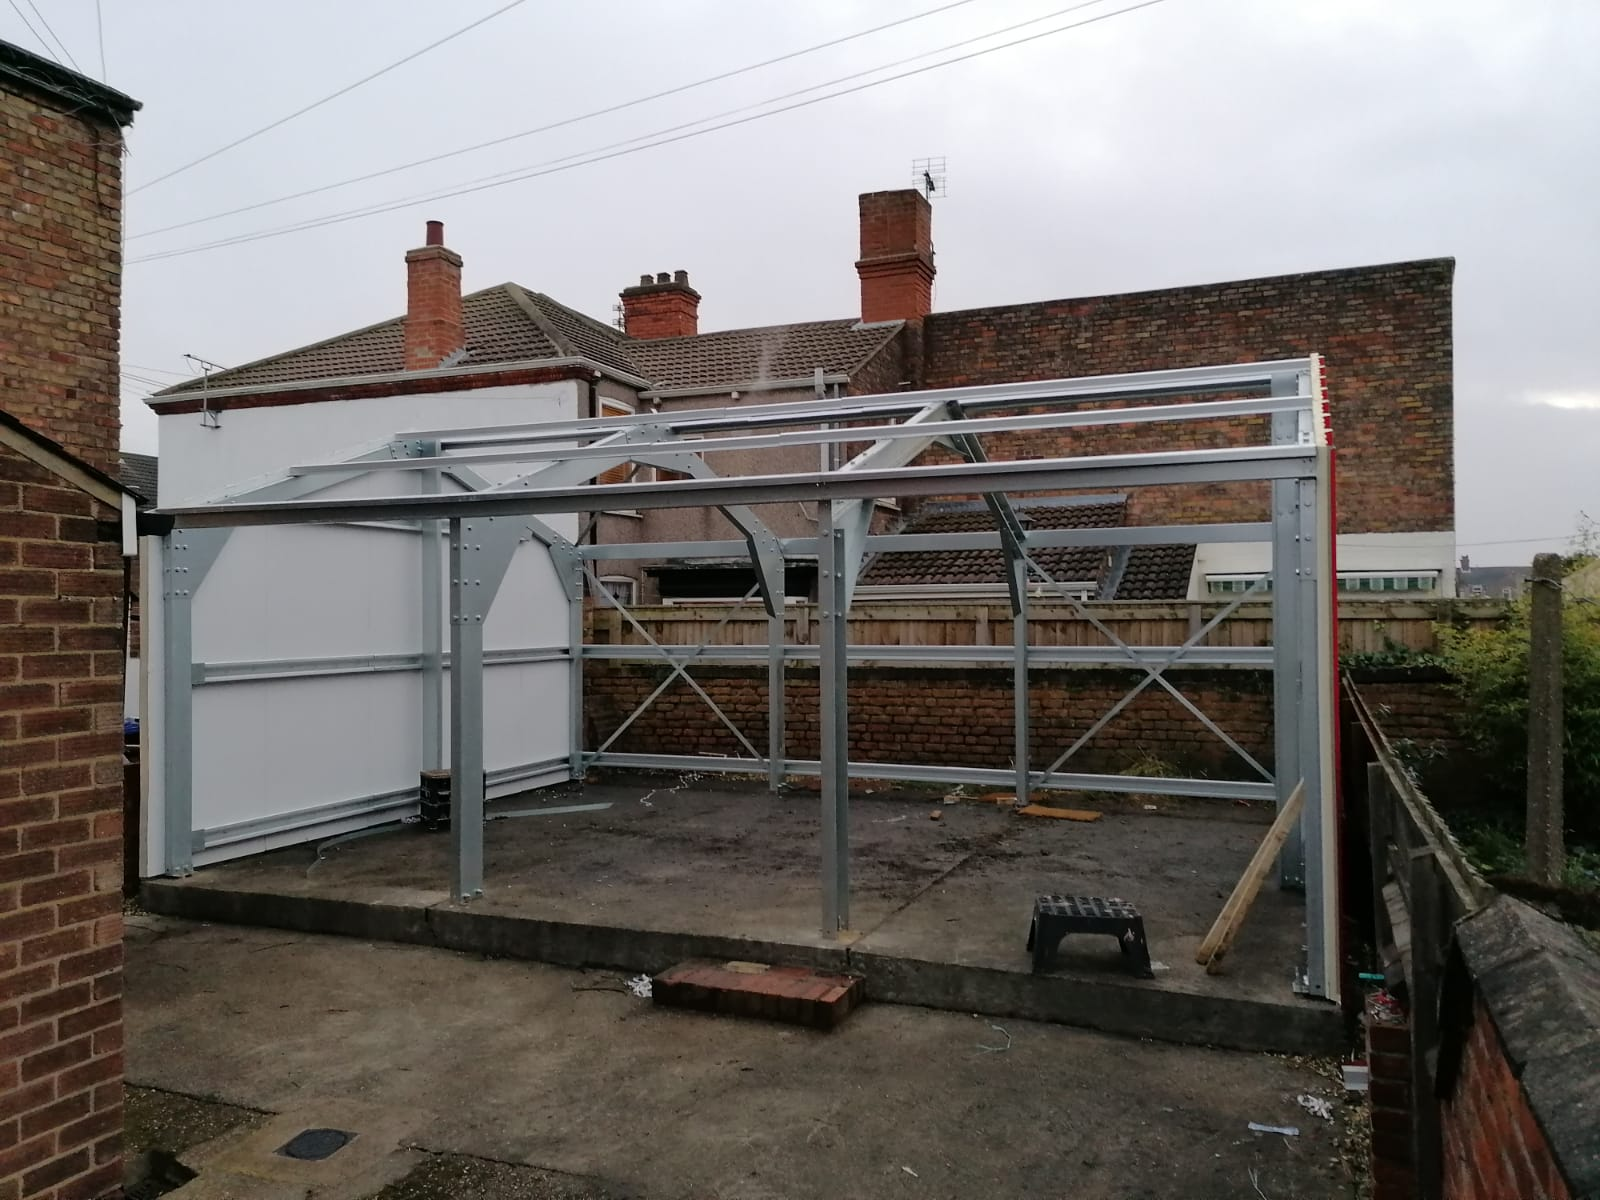 The shed takes shape